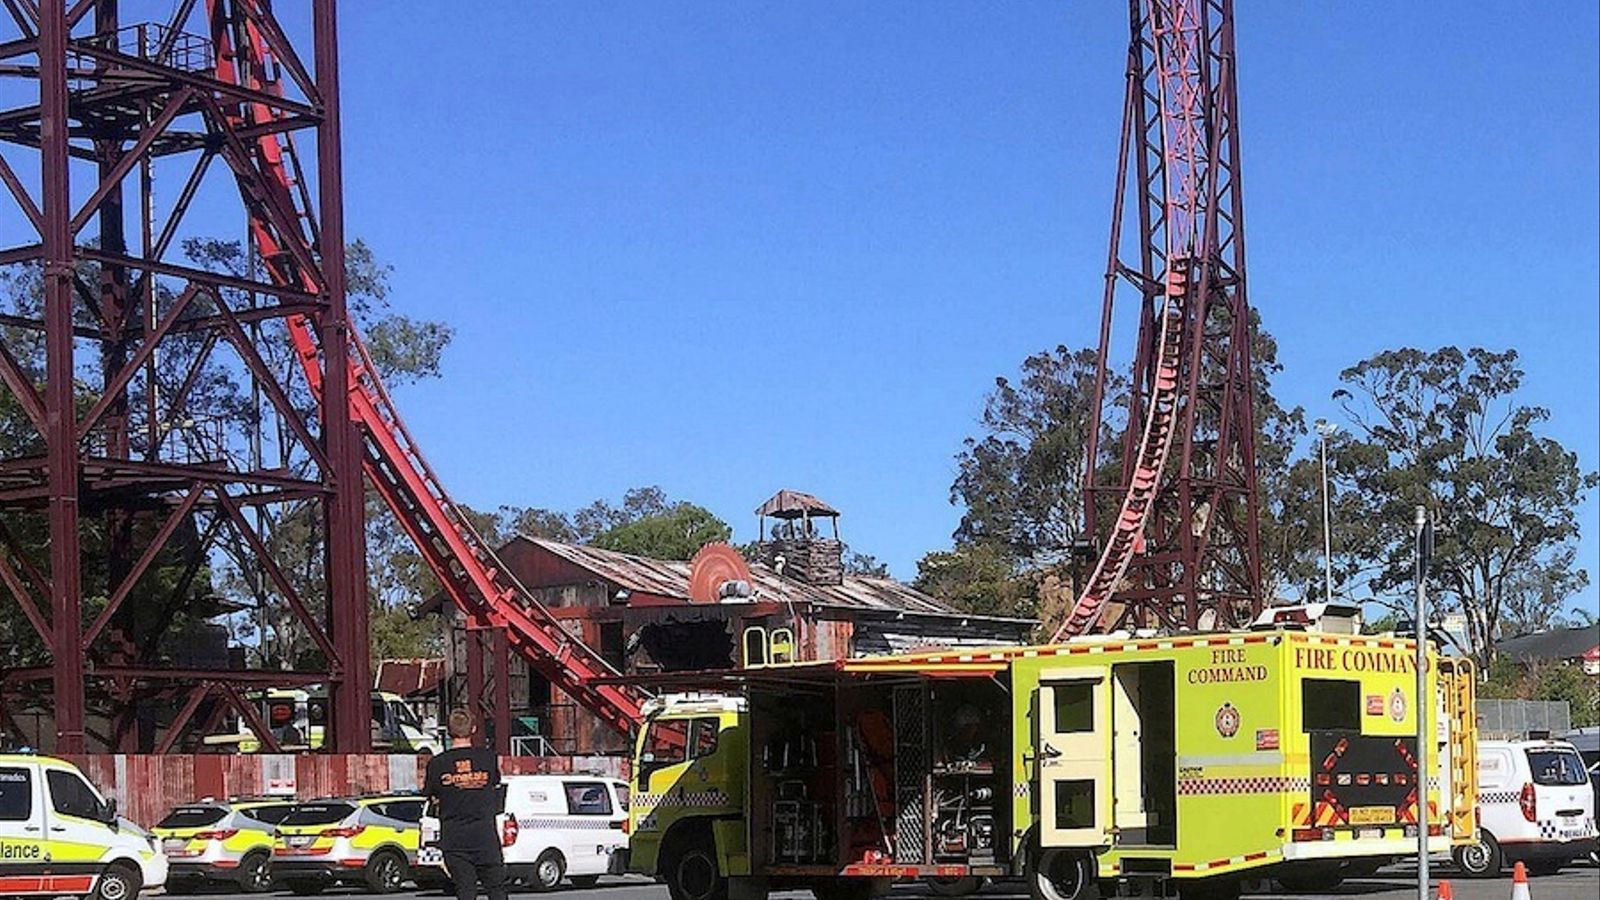 mergency services vehicles can be seen outside the Dreamworld theme park at Coomera on the Gold Coast, Australia, October 25, 2016 after a number of people were reported killed on a ride at Australia's biggest theme park.